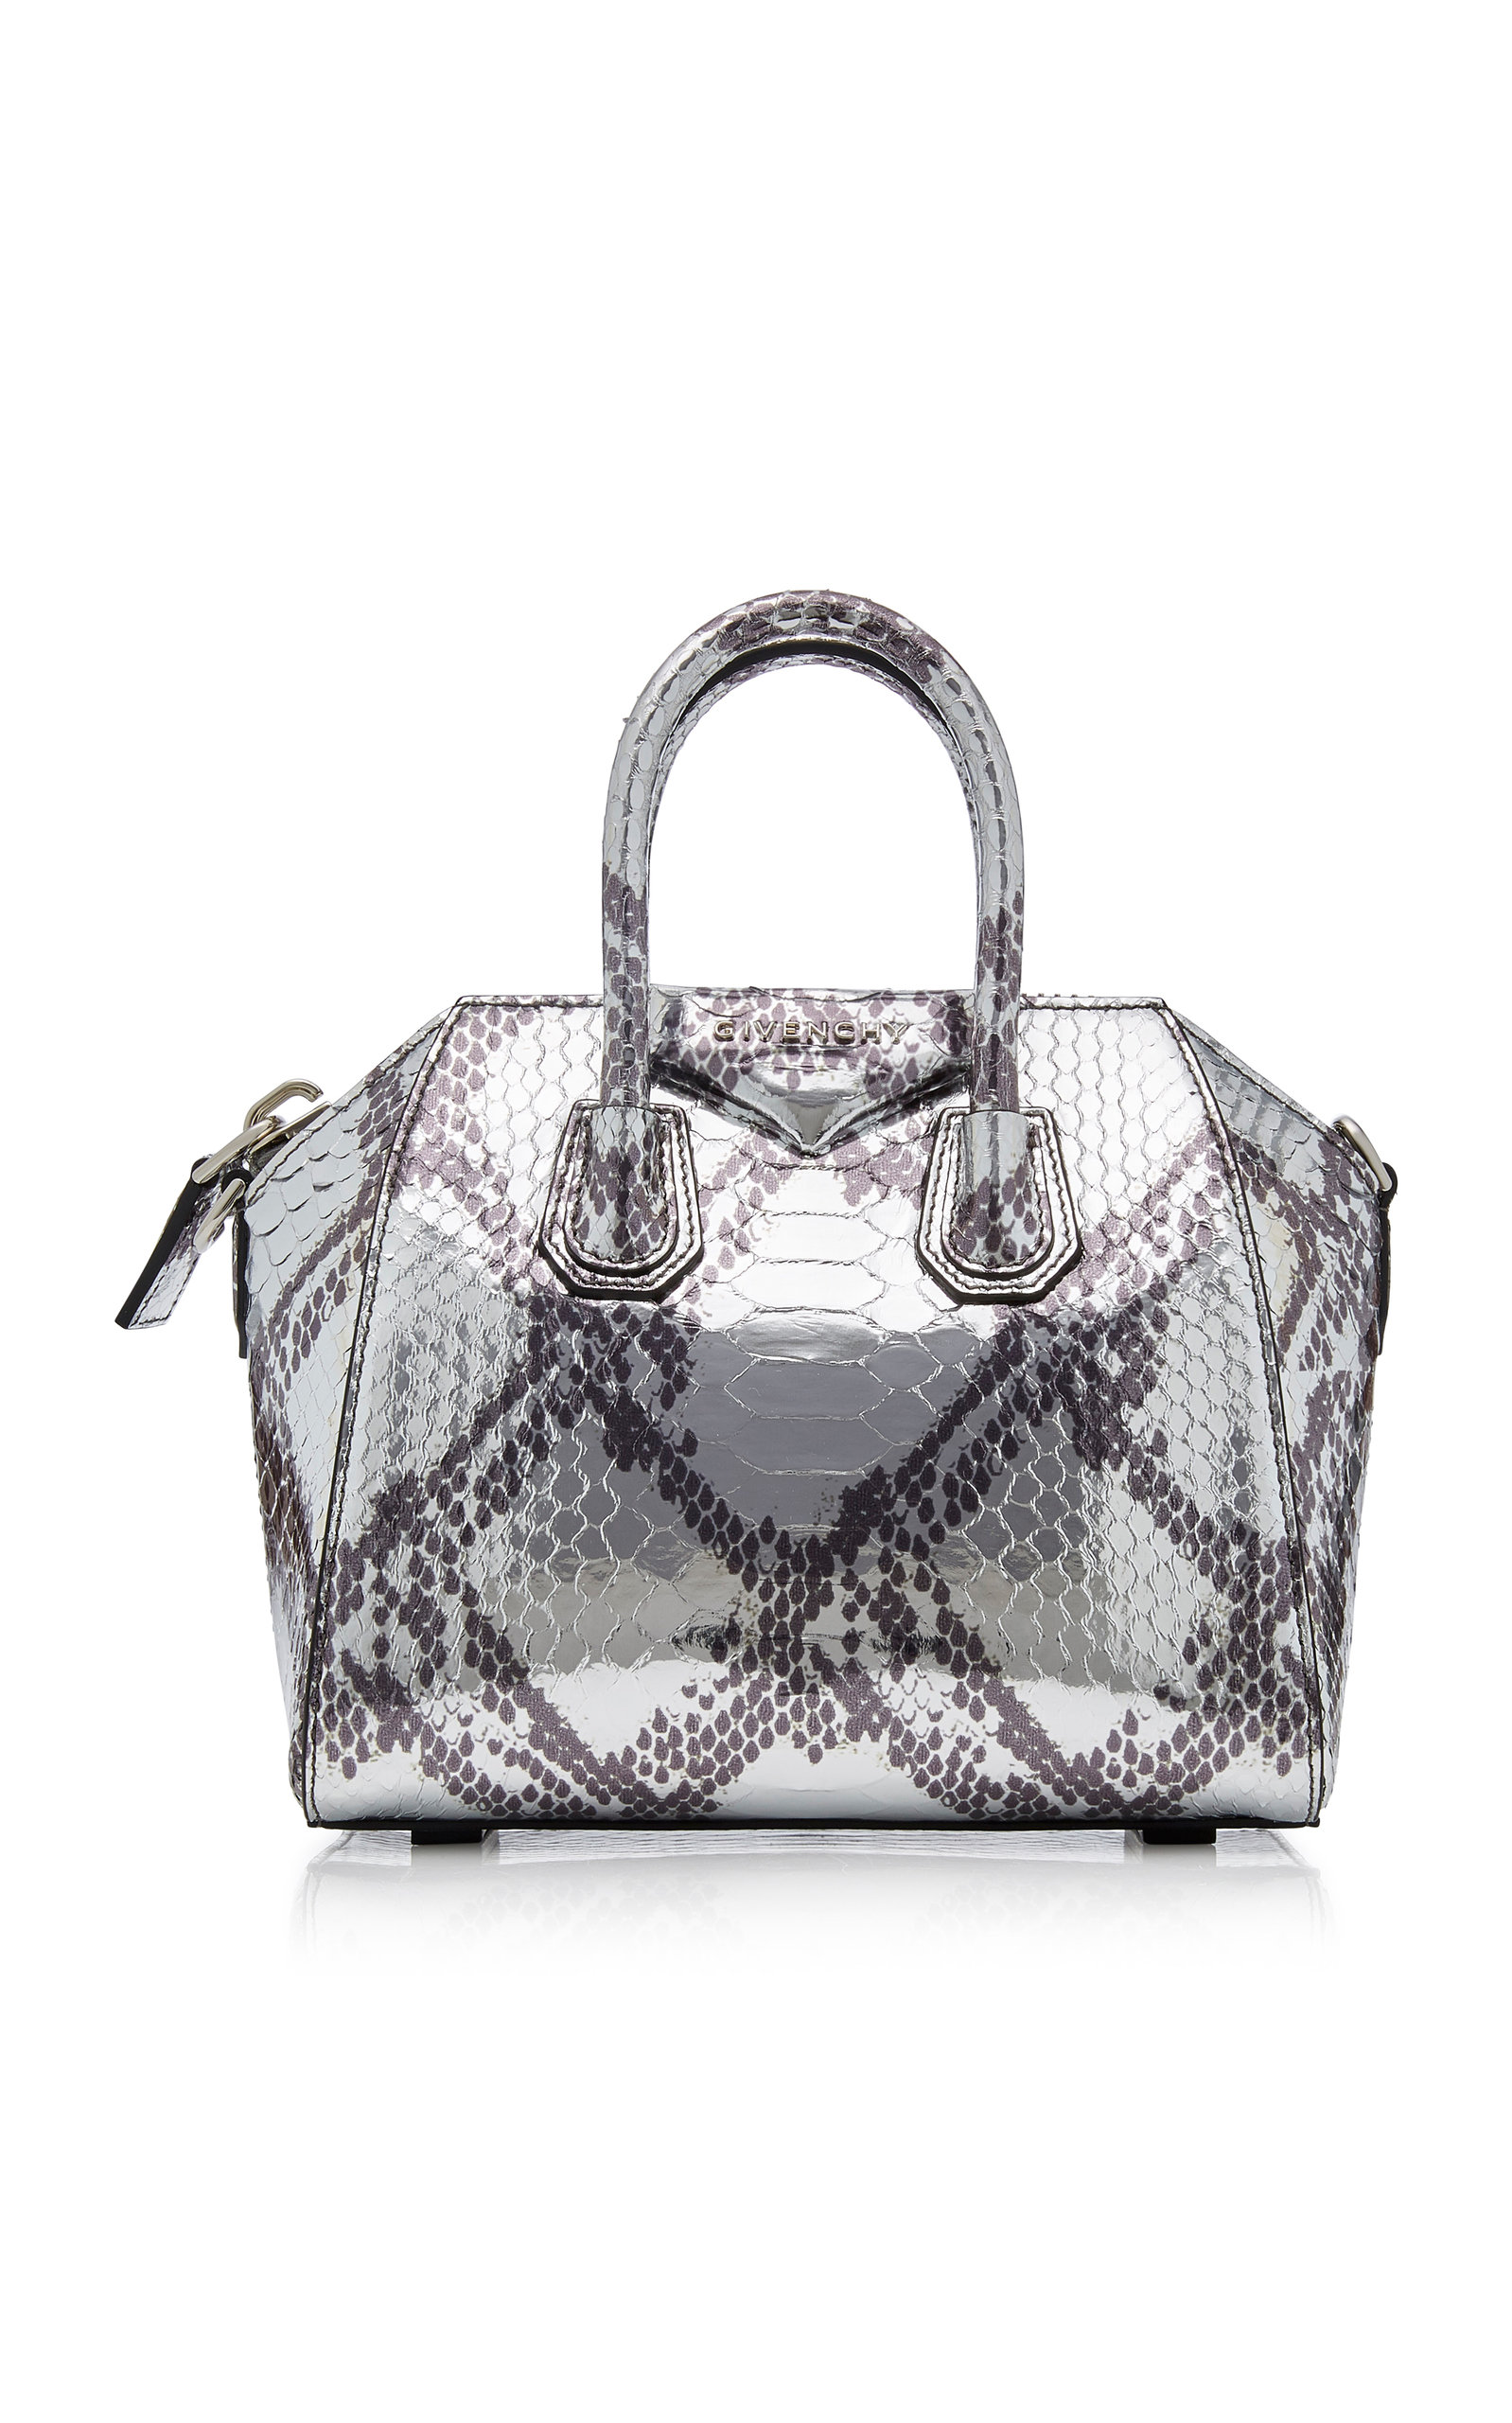 a030d8a4813b Antigona Python Shoulder Bag by Givenchy